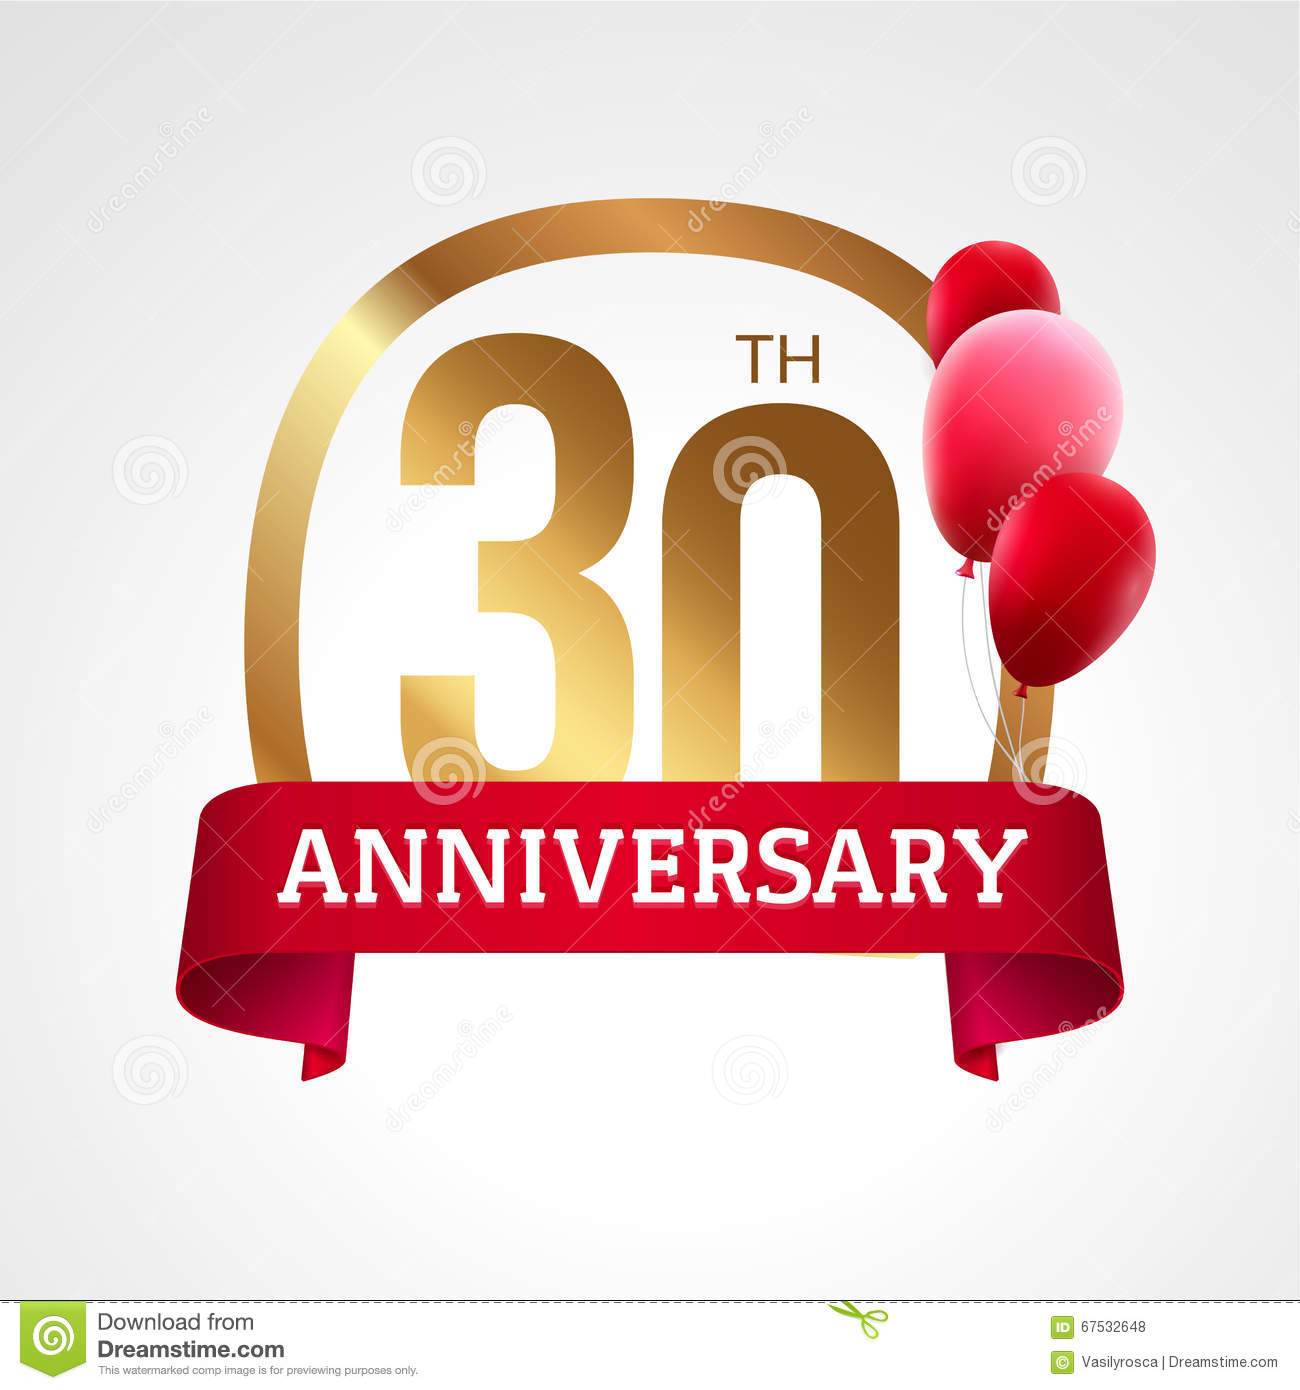 Celebrating 30 years anniversary golden label with ribbon and balloons, vector template